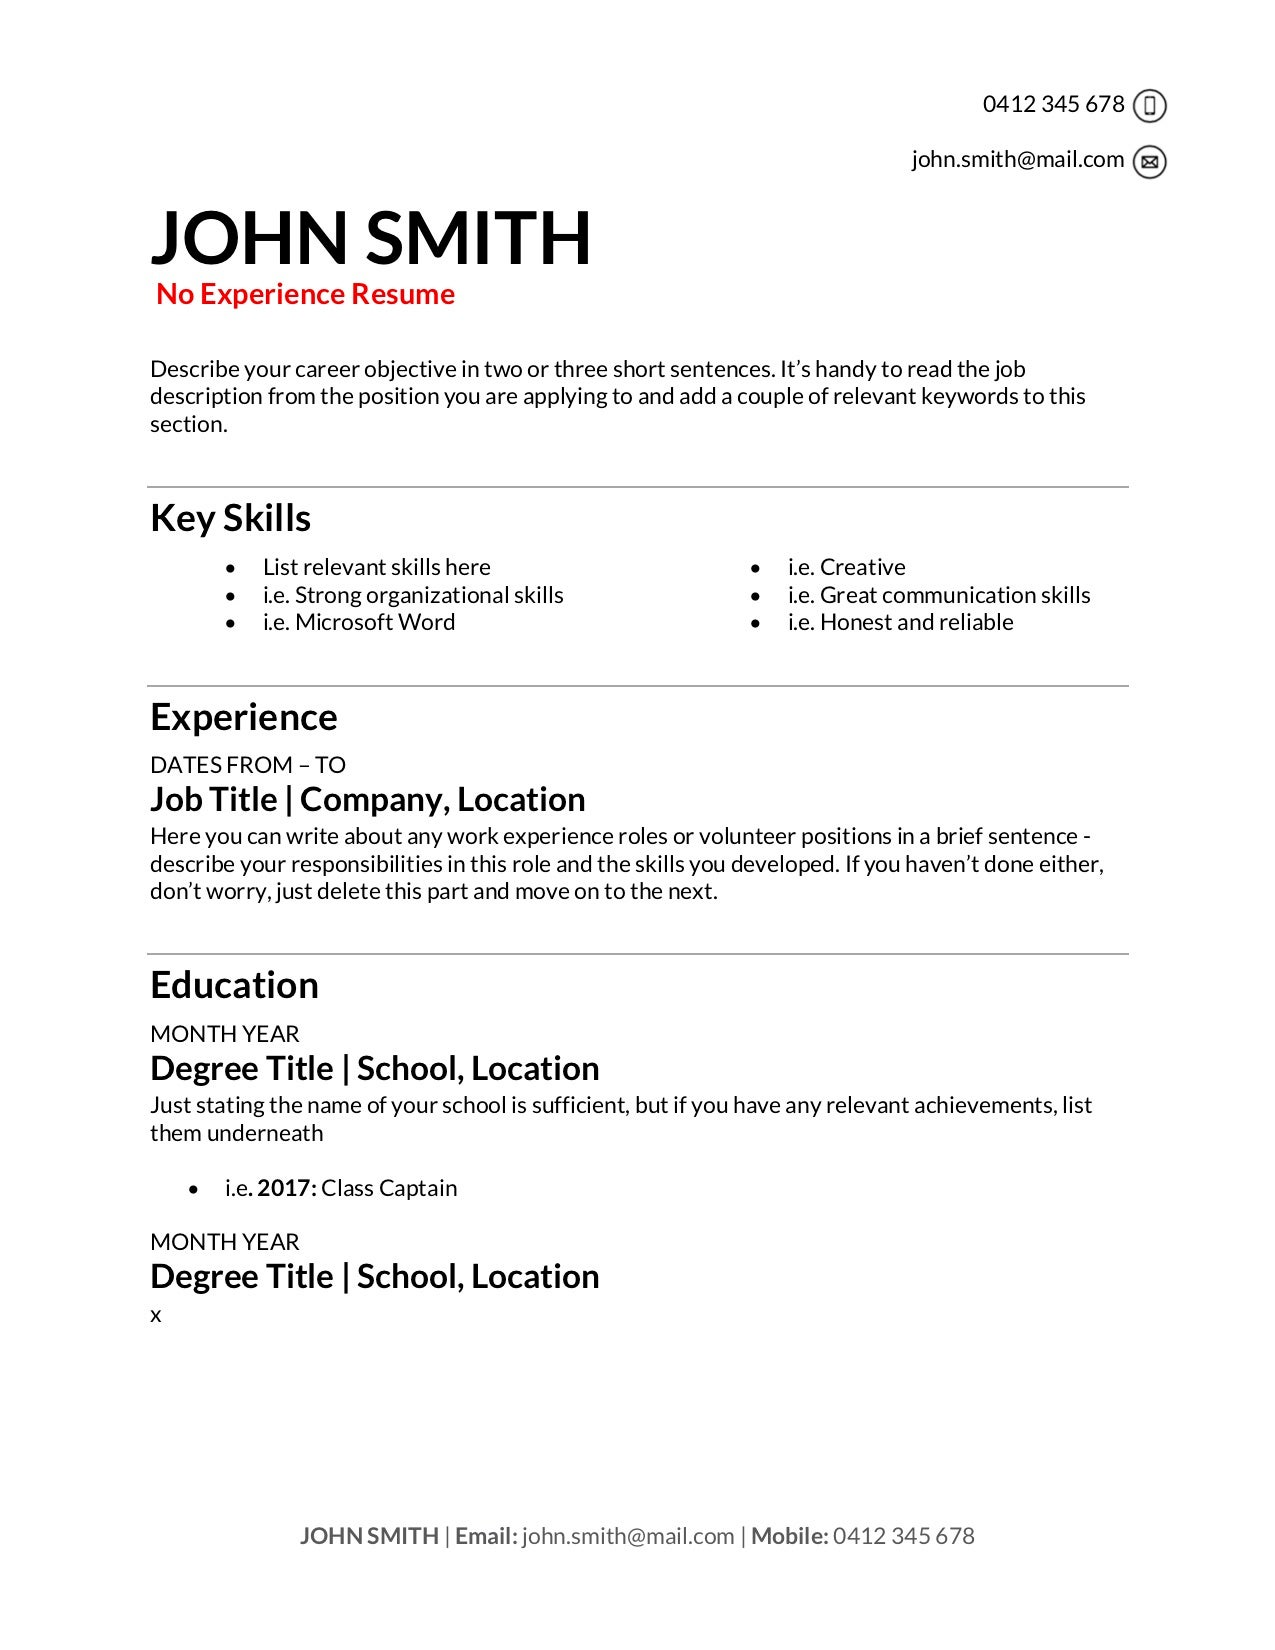 free resume templates to write in training au professional skills template no experience Resume Professional Skills Resume Template